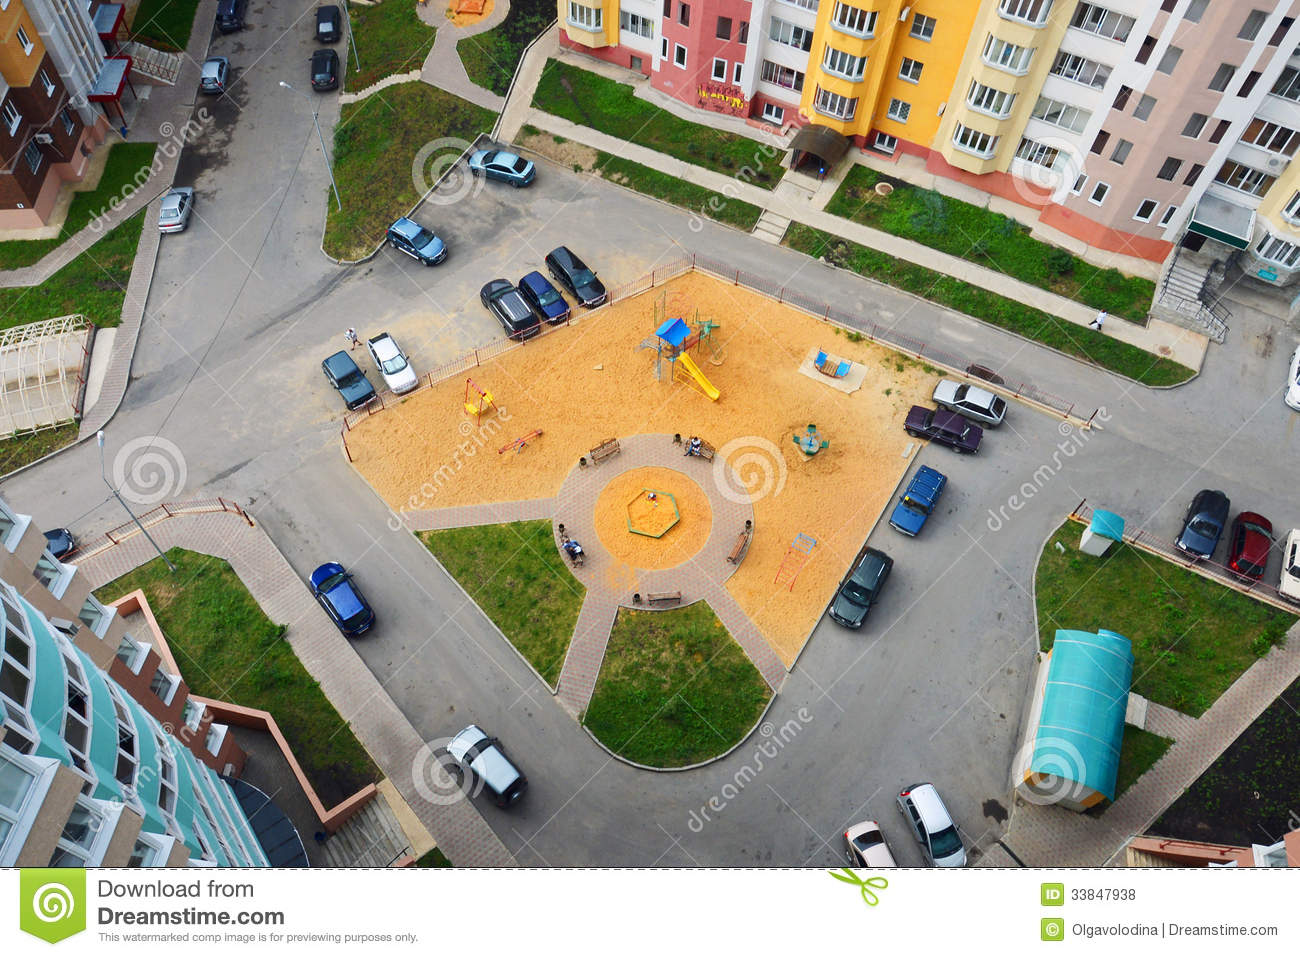 Apartment Building Courtyard courtyard of apartment building in the city, the view from above